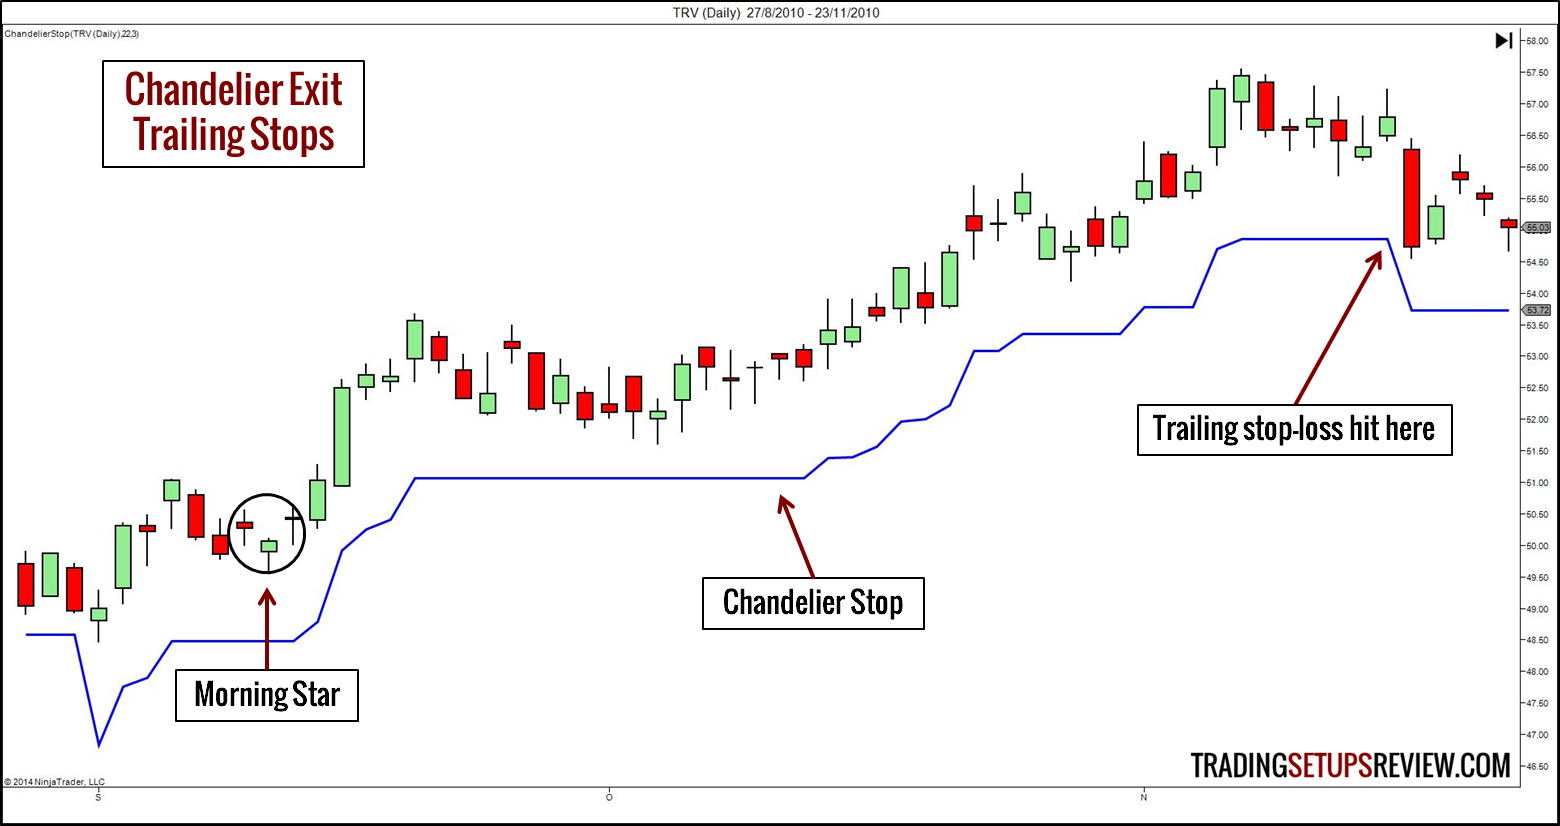 Chandelier Trailing Stop